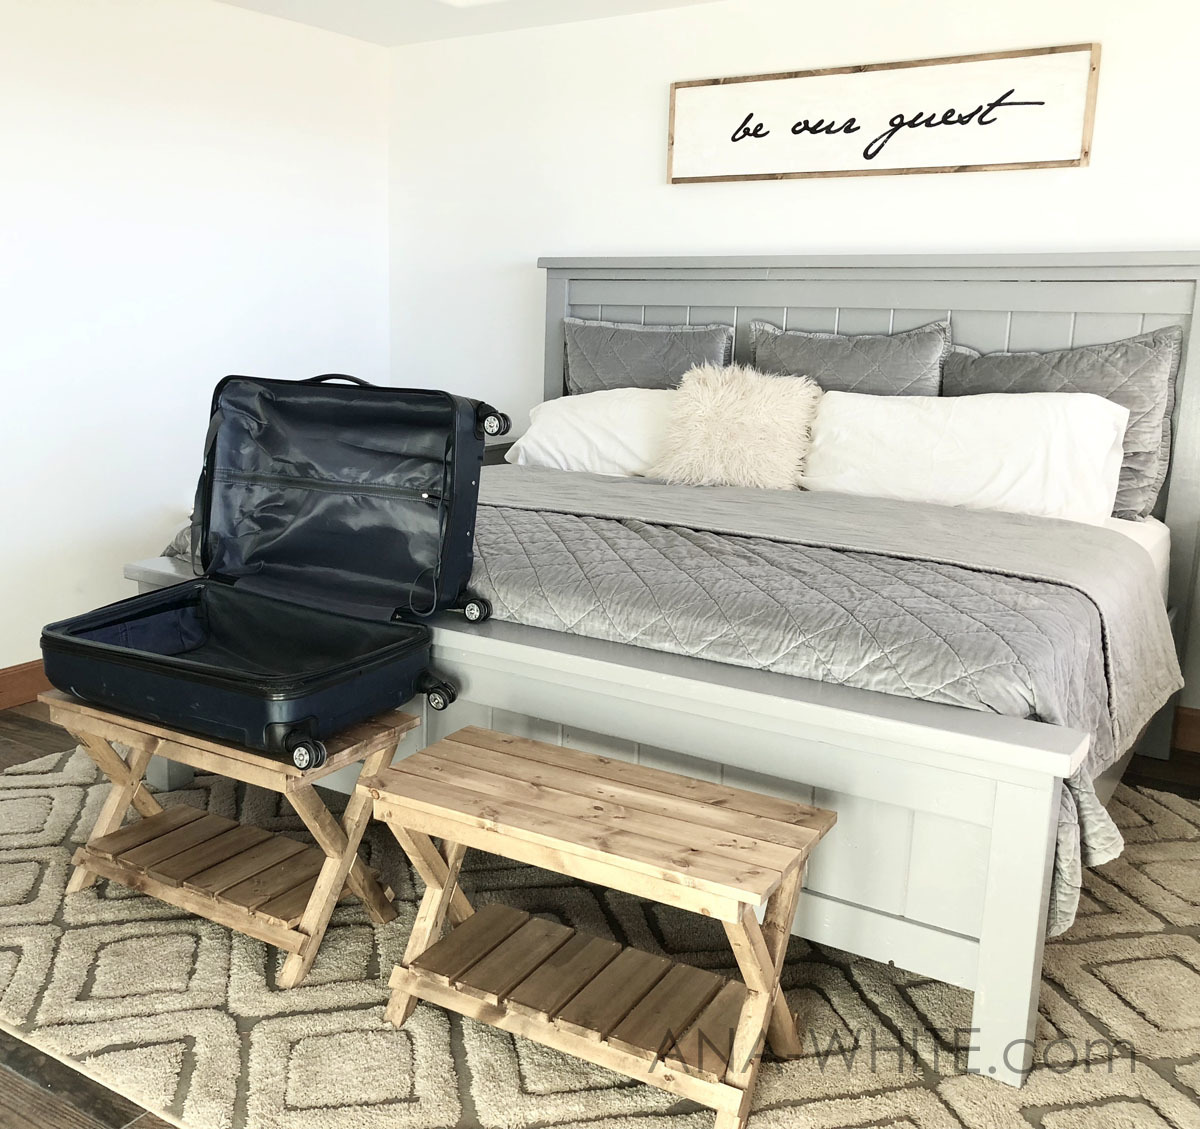 upgraded luggage rack or suitcase stand